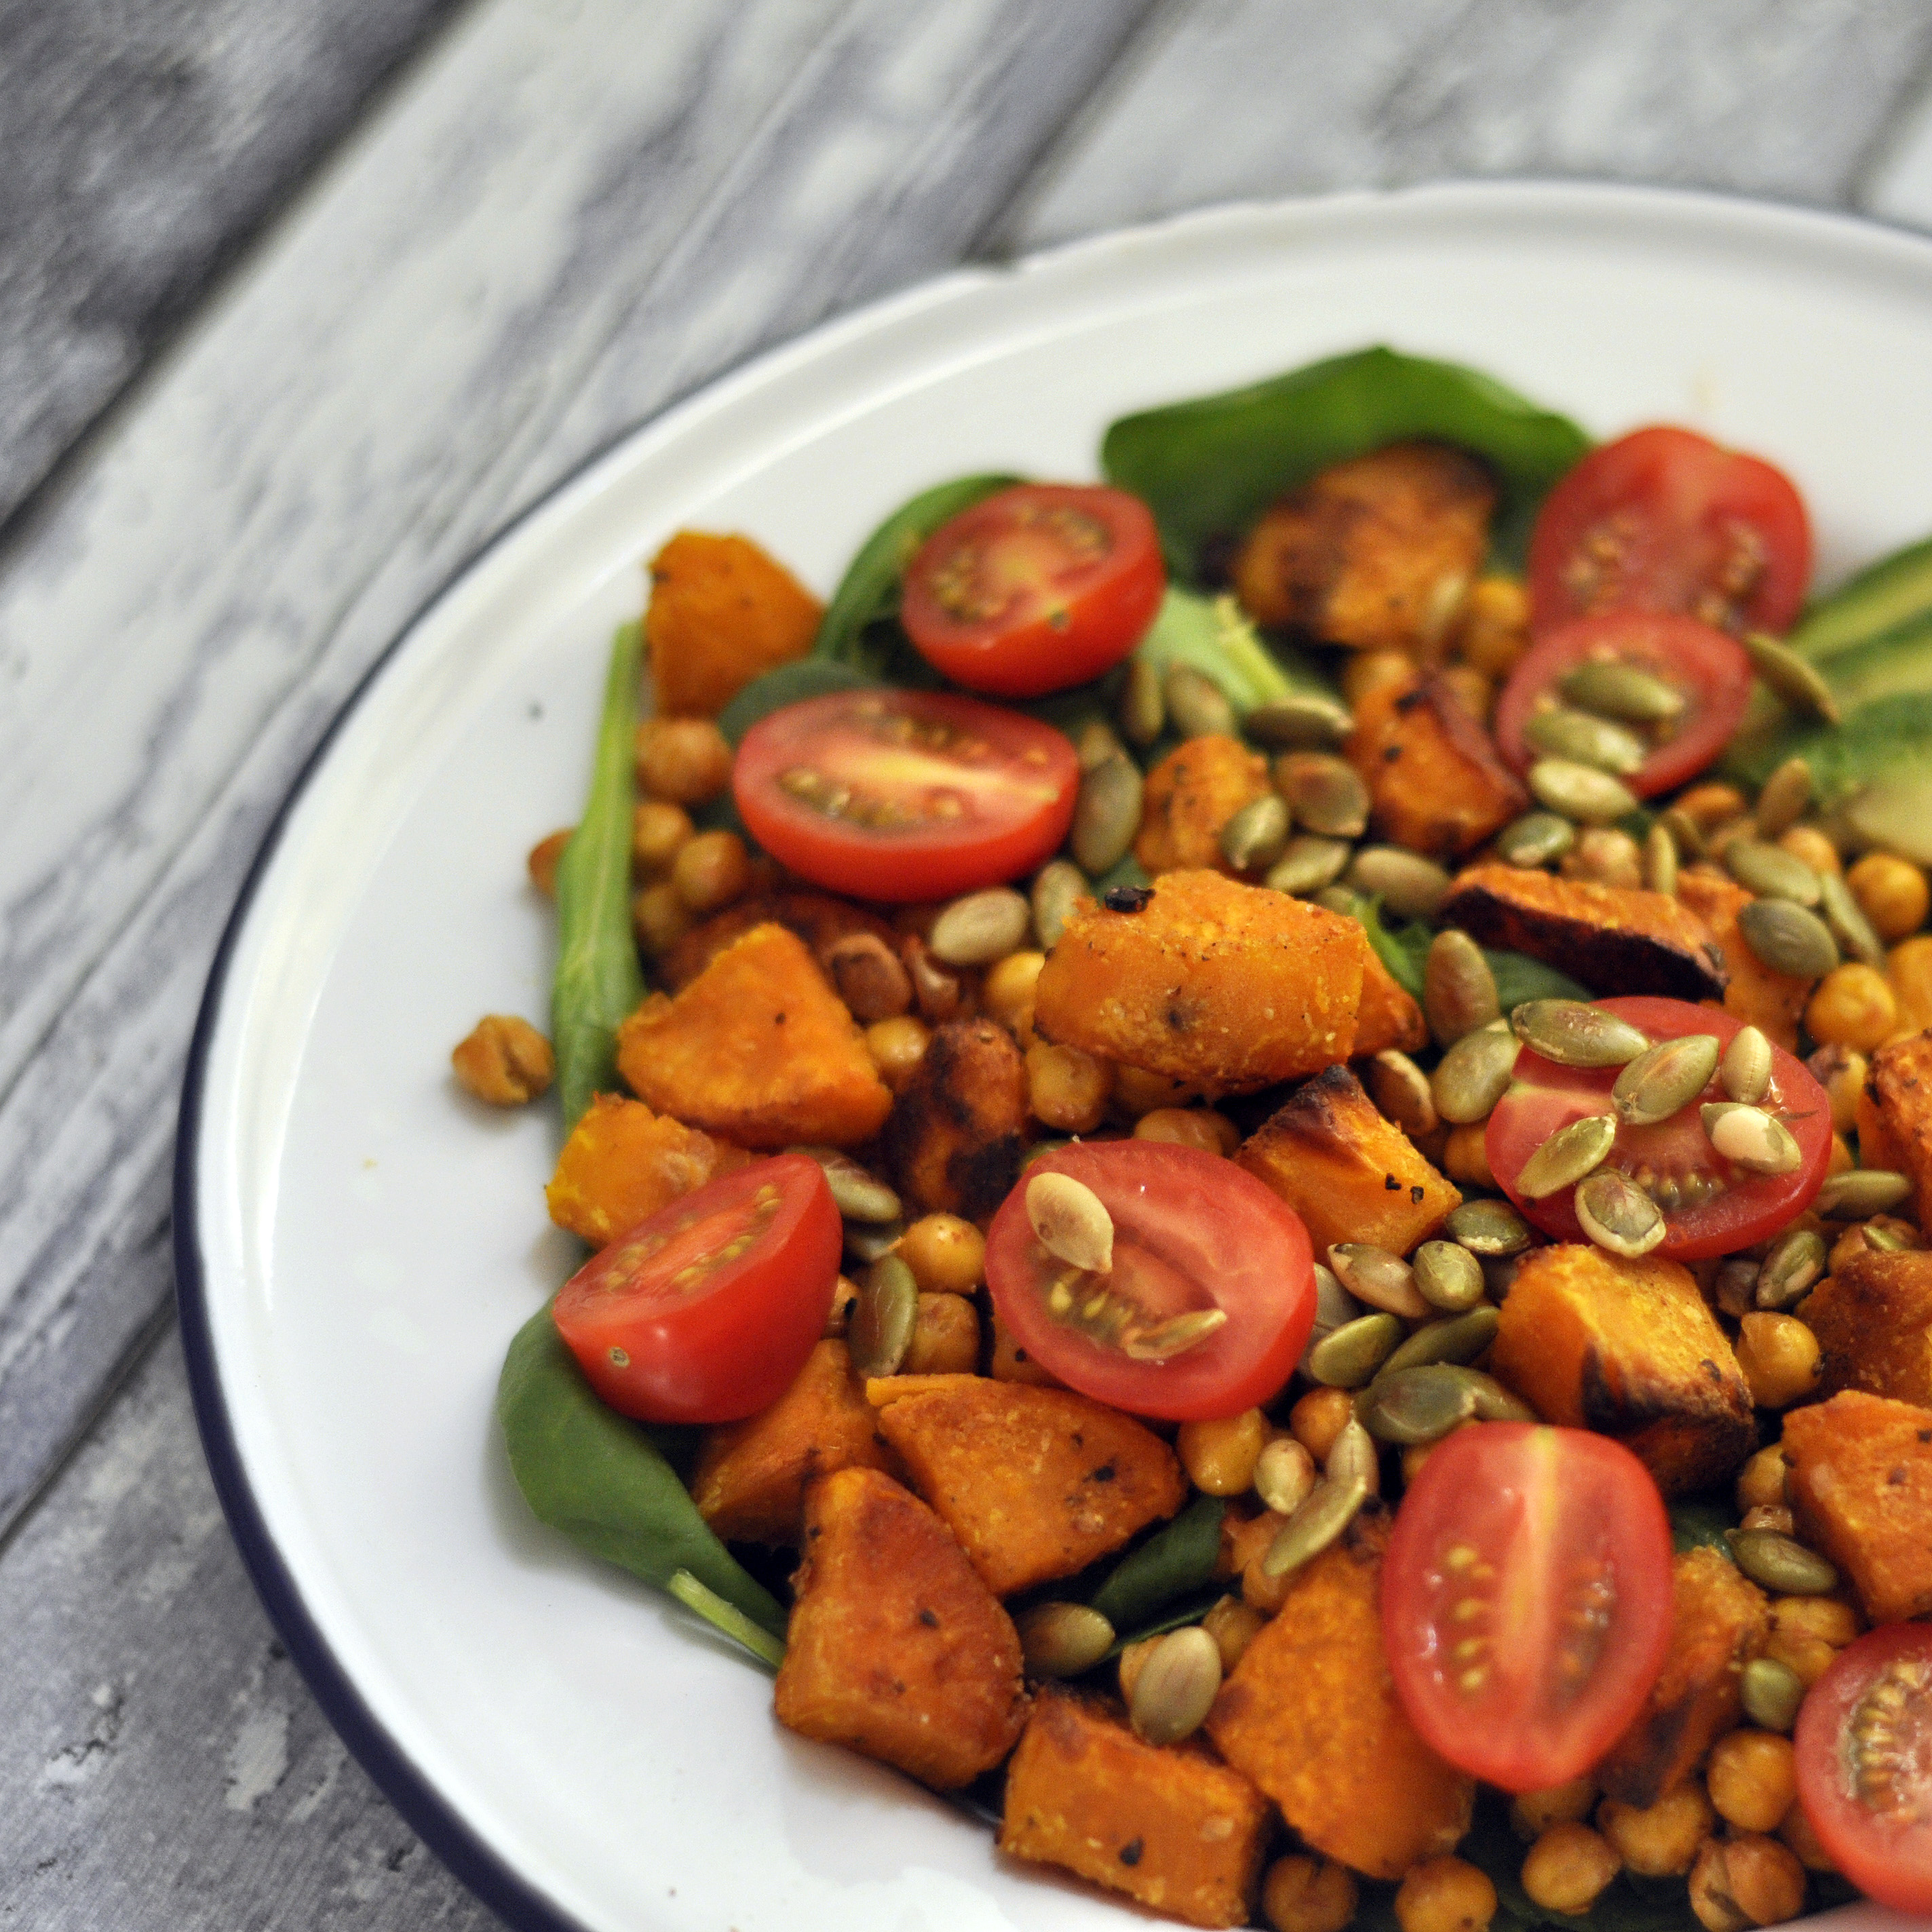 Roasted Sweet Potato & Chickpea Salad